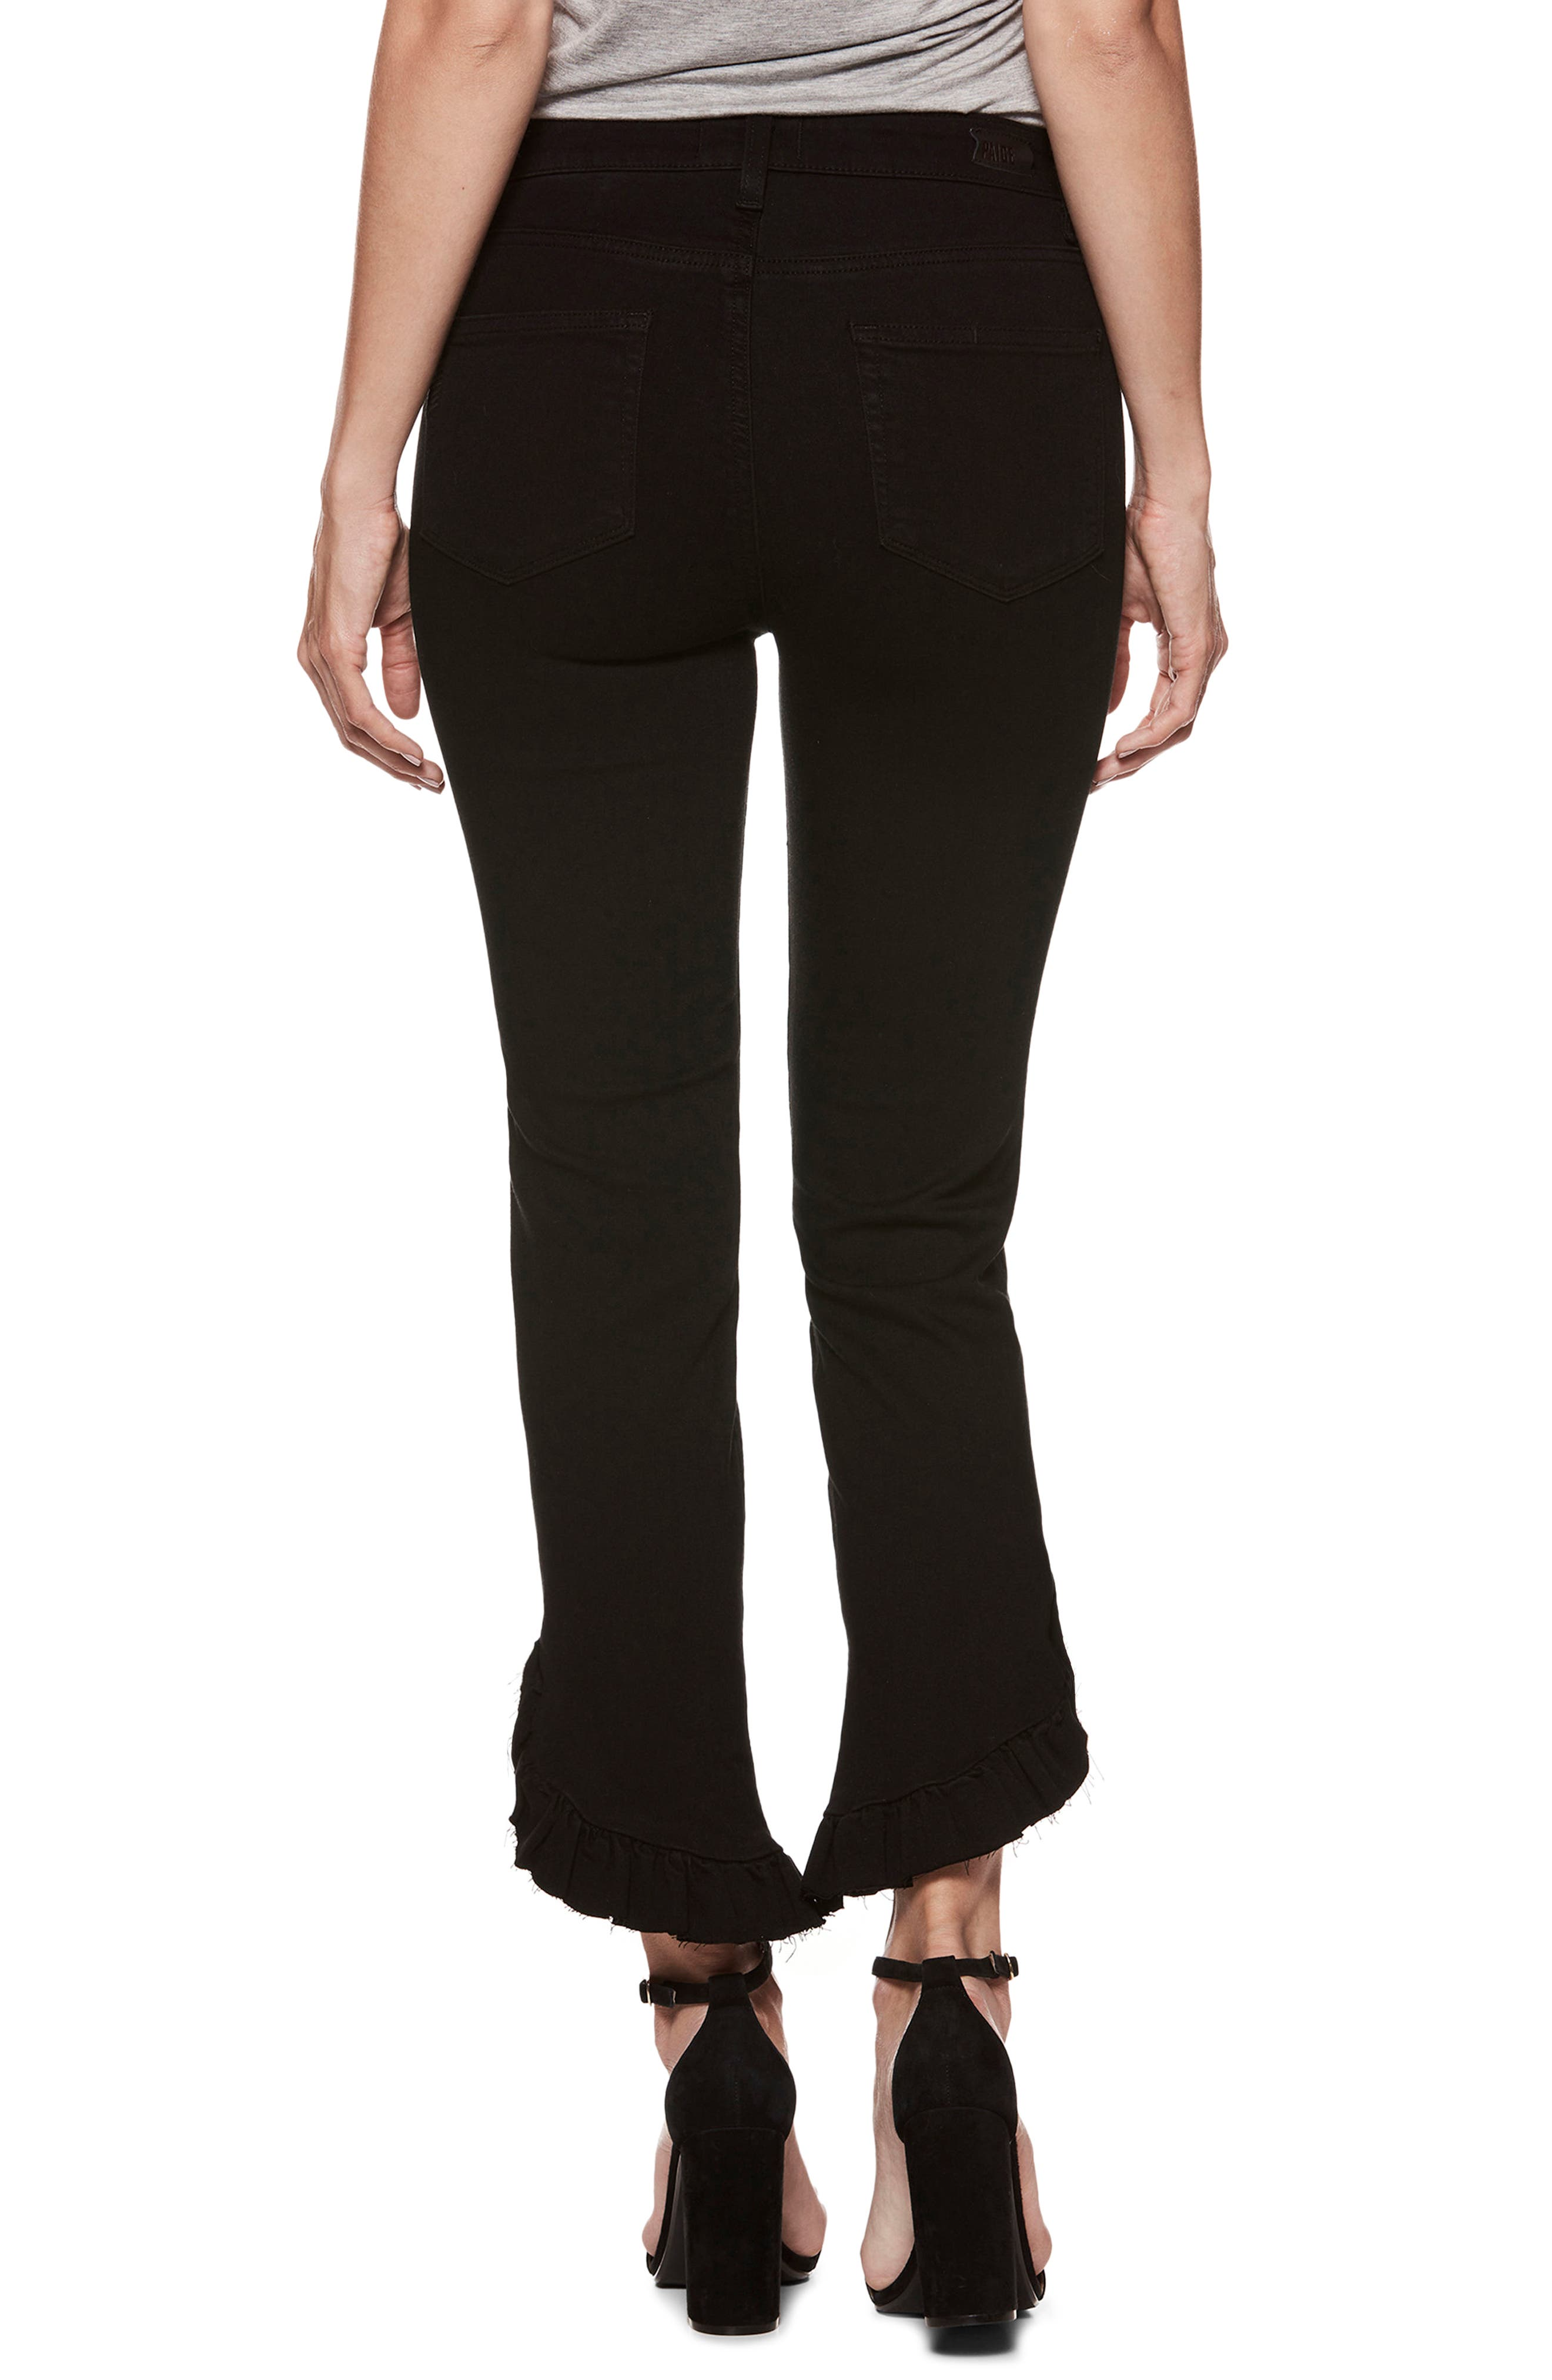 Transcend - Hoxton High Waist Ankle Straight Leg Jeans,                             Alternate thumbnail 2, color,                             Black Shadow